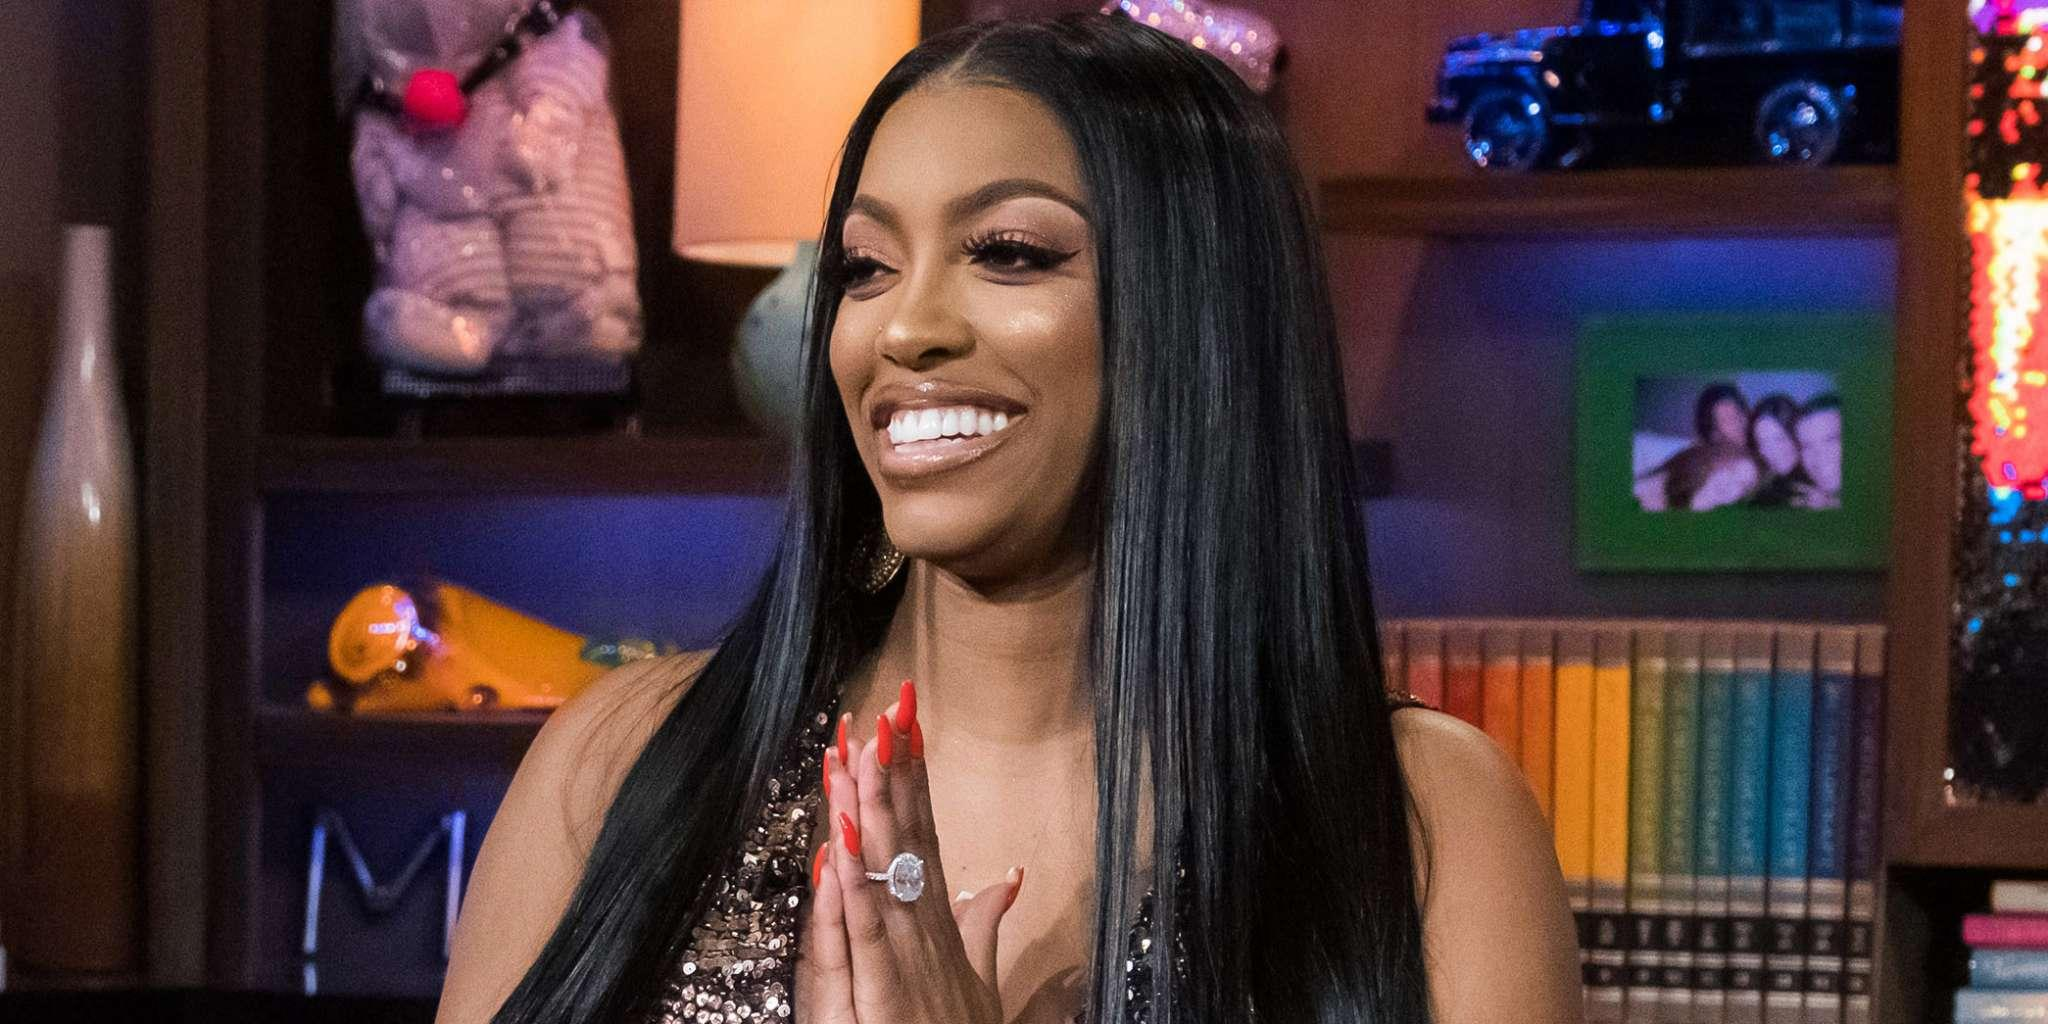 Porsha Williams Finally Gives Fans What They've Been Asking For: She Posts The First Photo With Five-Day-Old Pilar Jhena - Here's The Pic